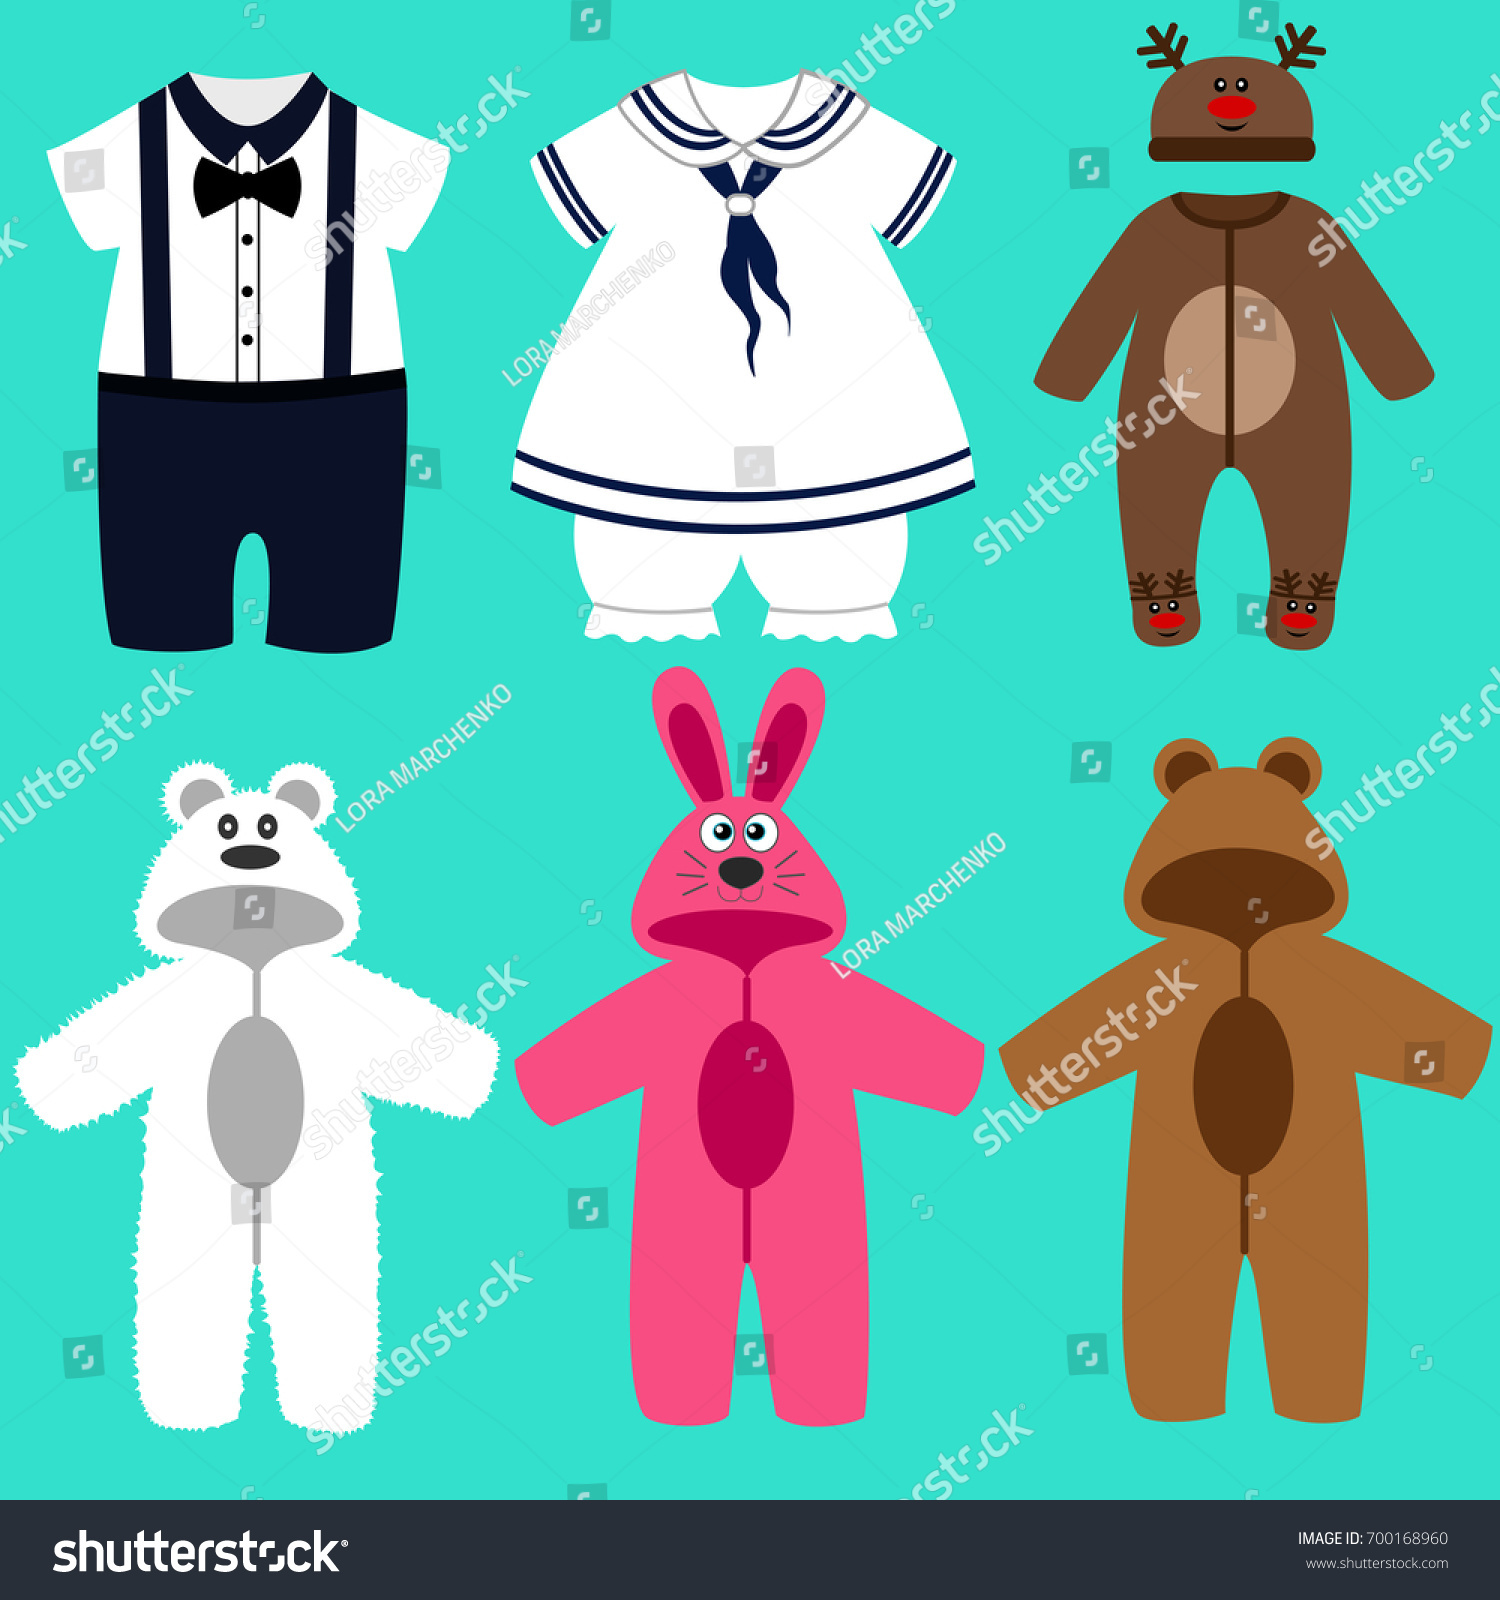 7564da80d Baby Clothes Childrens Tuxedo Romper Suit Stock Vector (Royalty Free ...